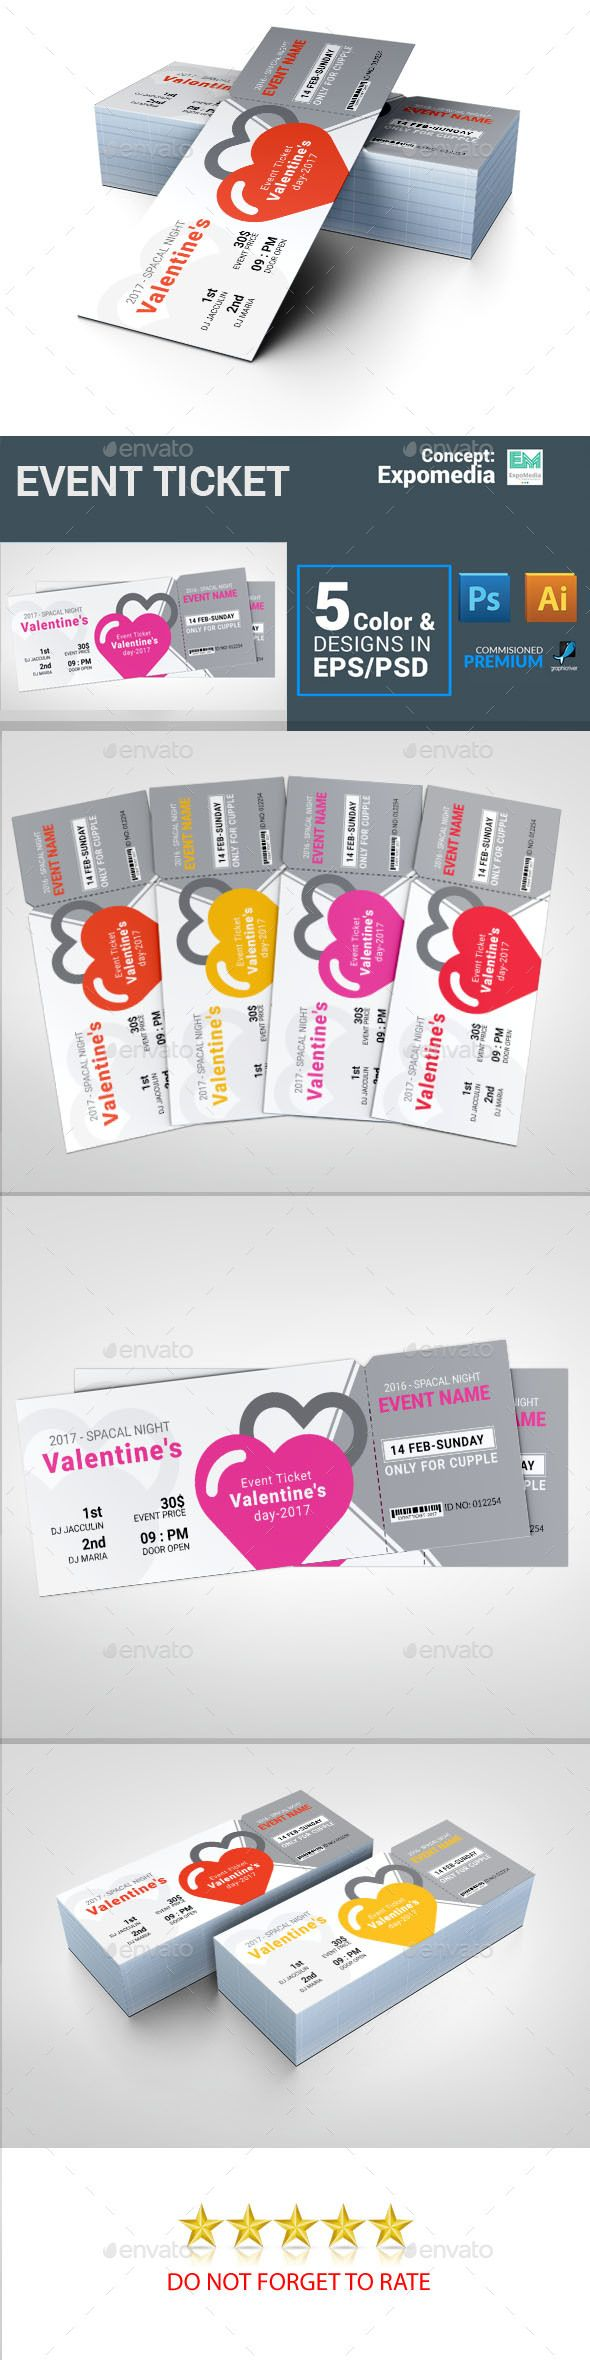 Valentines Event Ticket Vector EPS Tickets Template Indesign O Download